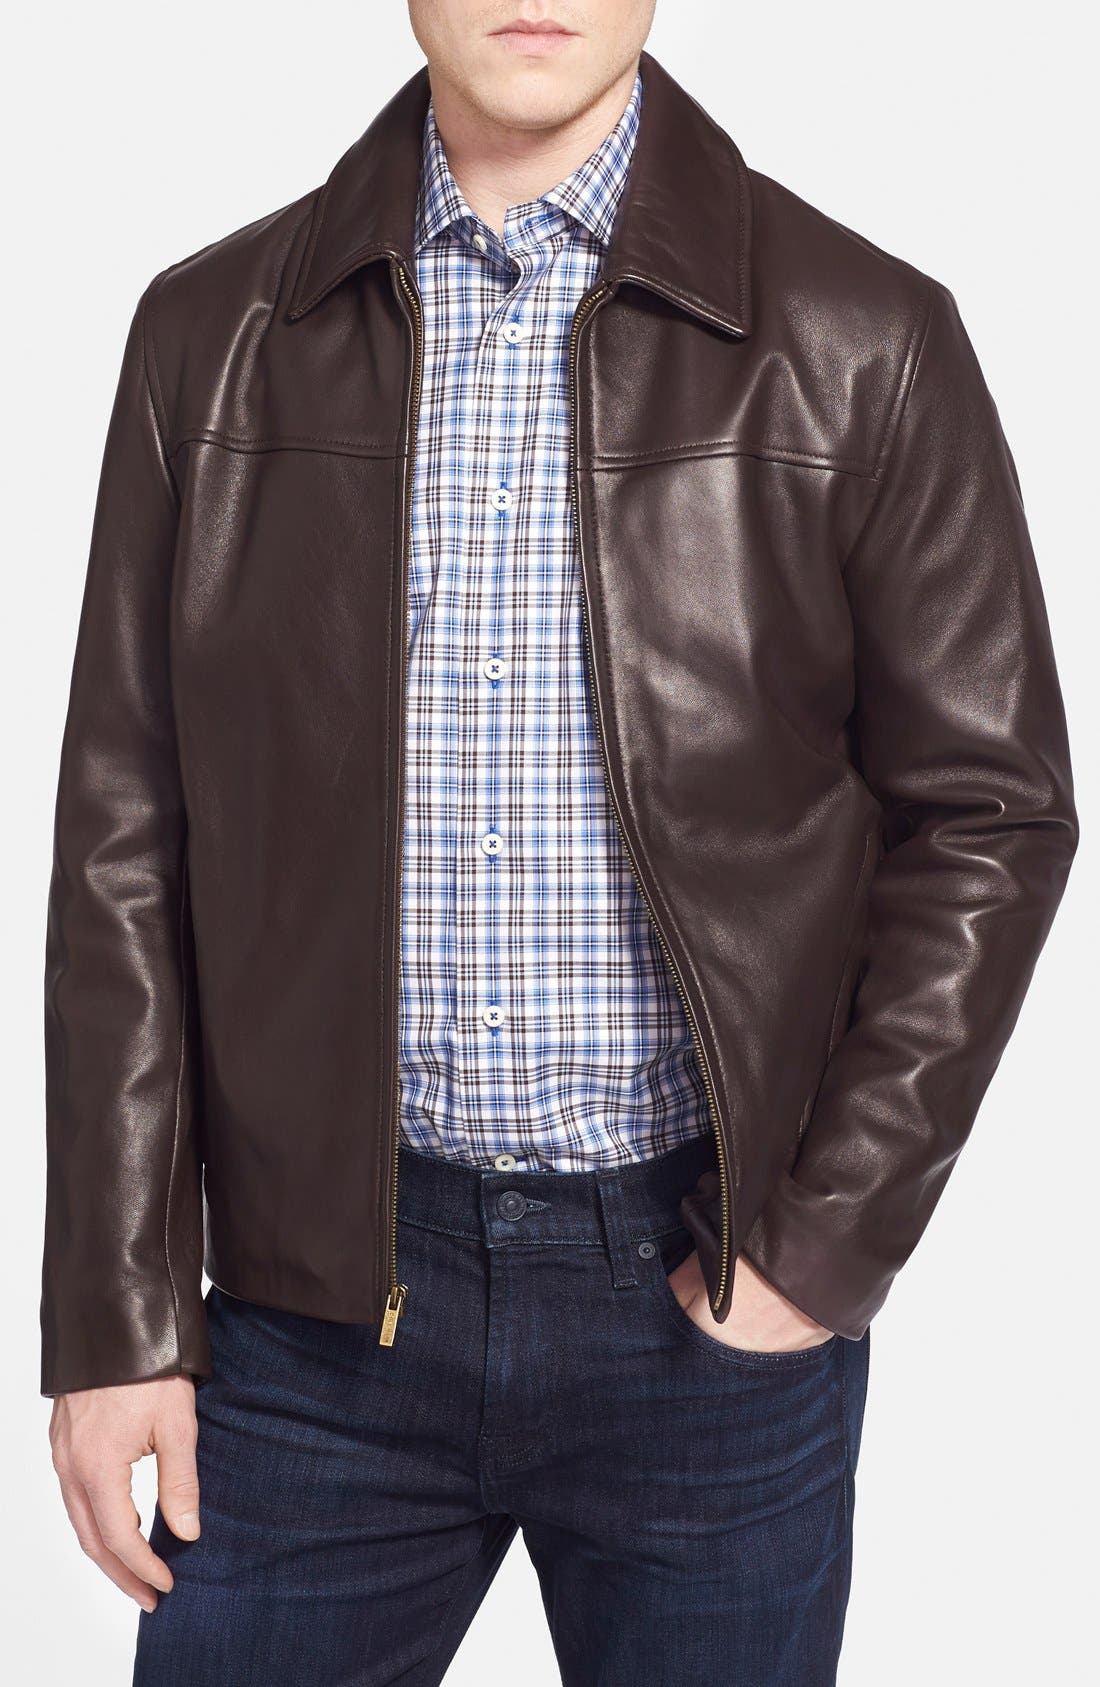 Alternate Image 1 Selected - Cole Haan Lambskin Leather Jacket (Online Only)